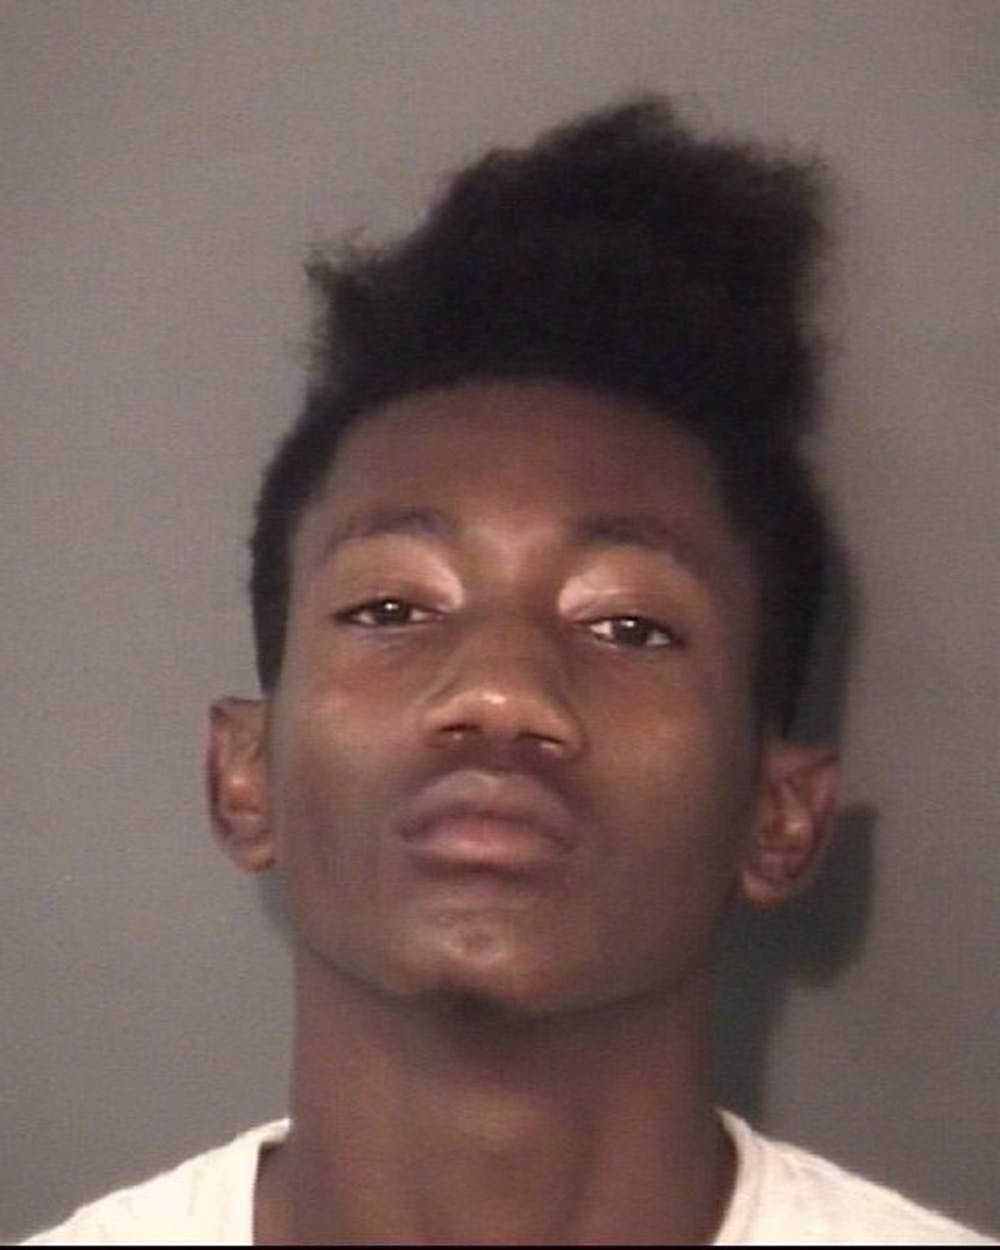 Man arrested after home invasion is thwarted by 11-year-old with machete